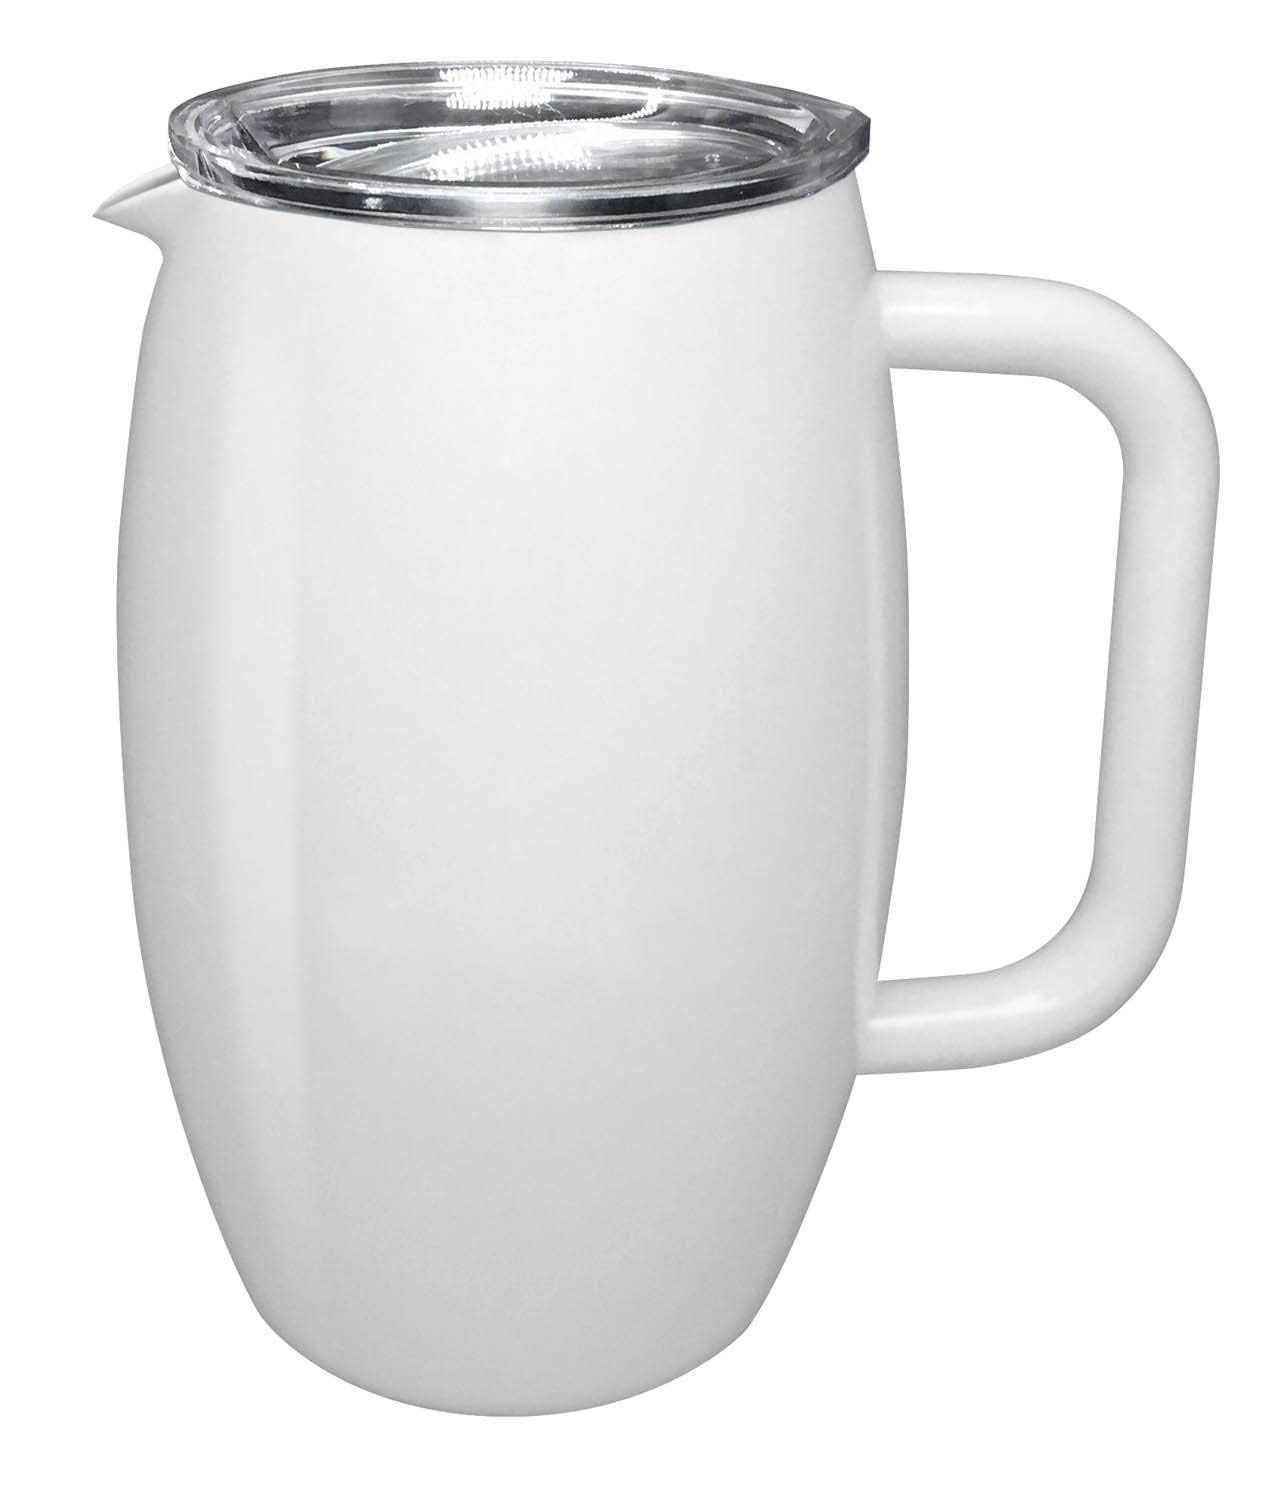 True North Stainless Steel Insulated Pitcher + Carafe with No-Spill BPA Free Triton Lid, Keeps Drinks Hot or Cold for 24 Hours, Perfect for Lemonade, Sangria, Coffee or Milk, 20 oz, Beach White by True North